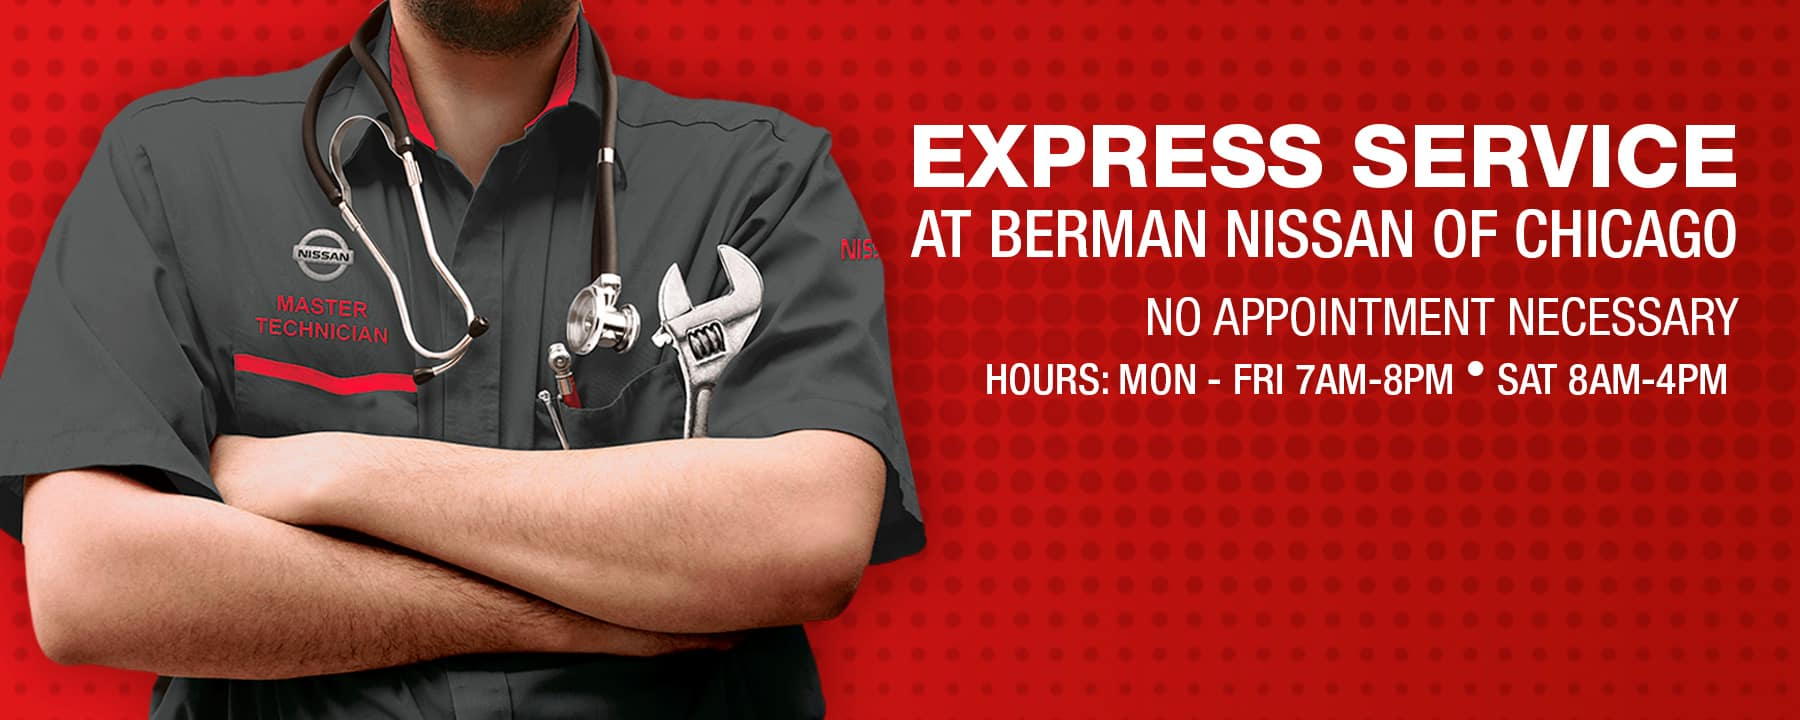 Express Service at Berman Nissan of Chicago!